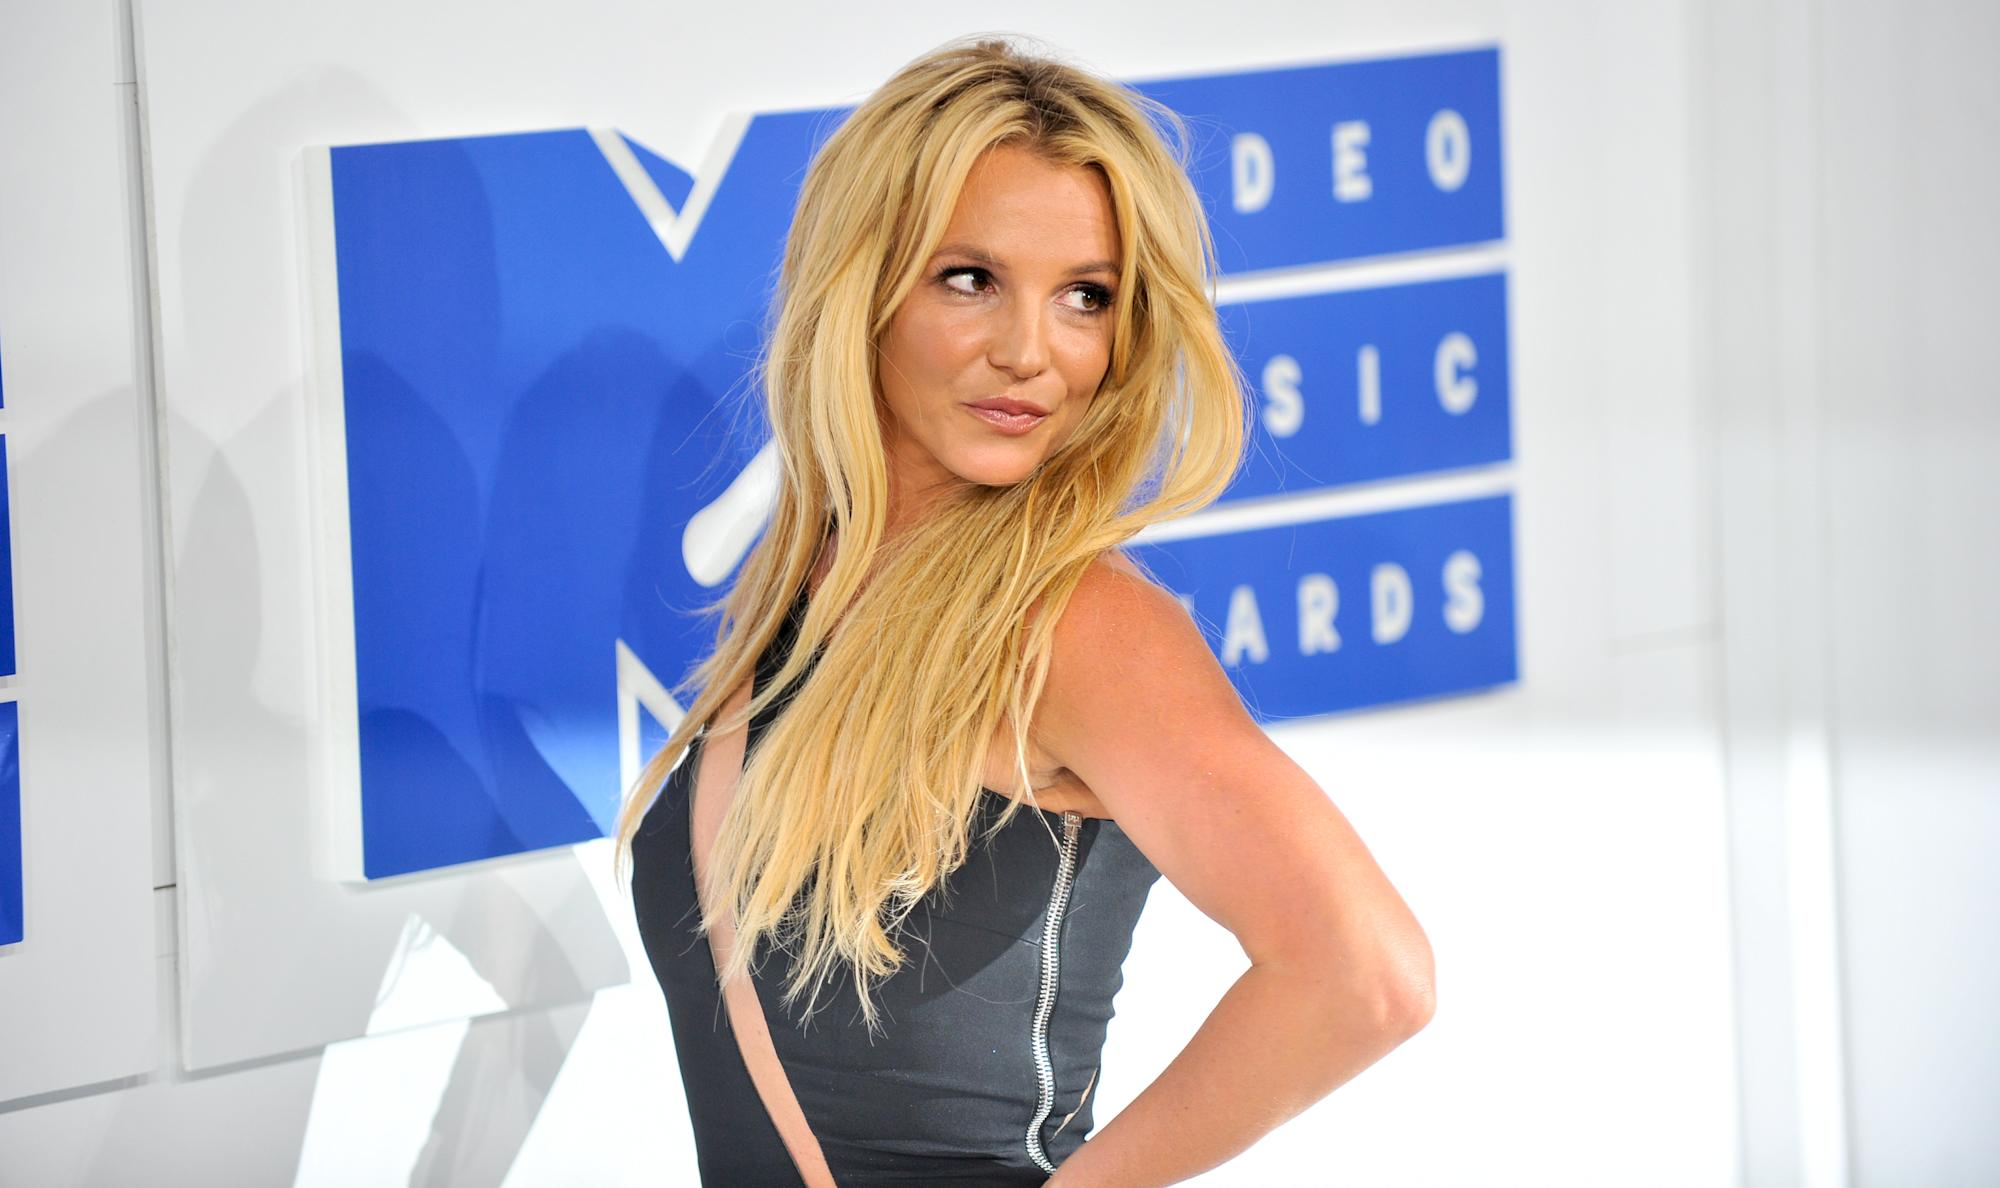 Britney Spears replaces Justin Timberlake in viral 'It's gonna be May' meme – Yahoo Entertainment